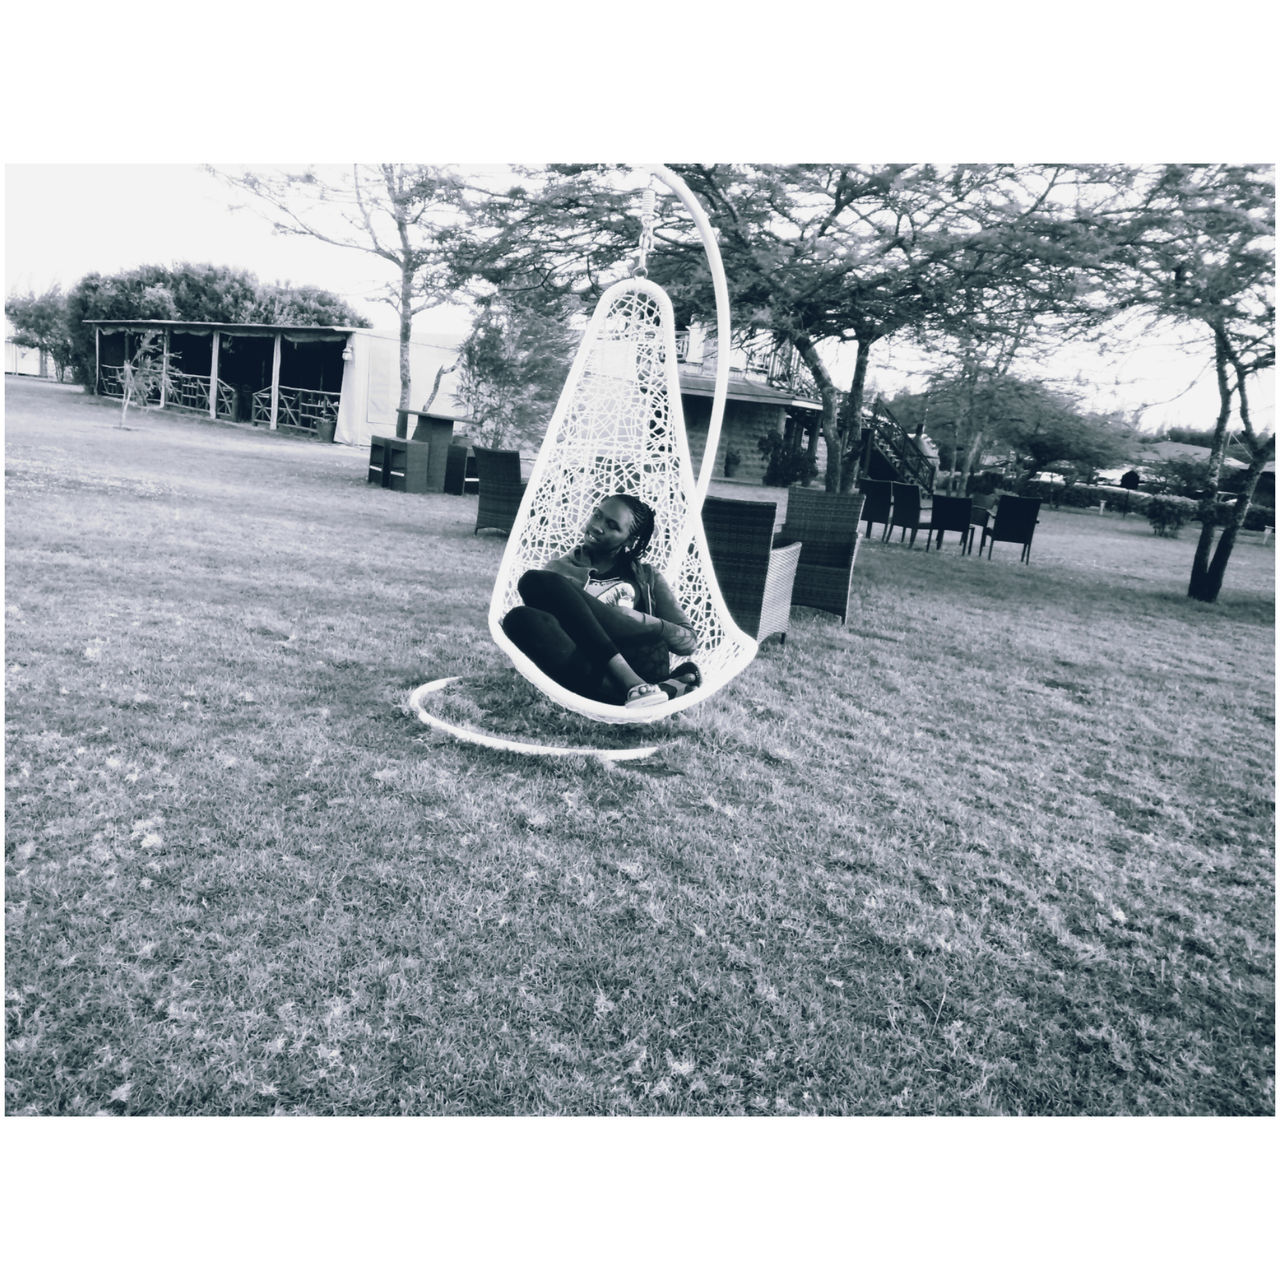 playground, grass, slide, tree, outdoors, park - man made space, day, outdoor play equipment, hanging, no people, childhood, nature, sky